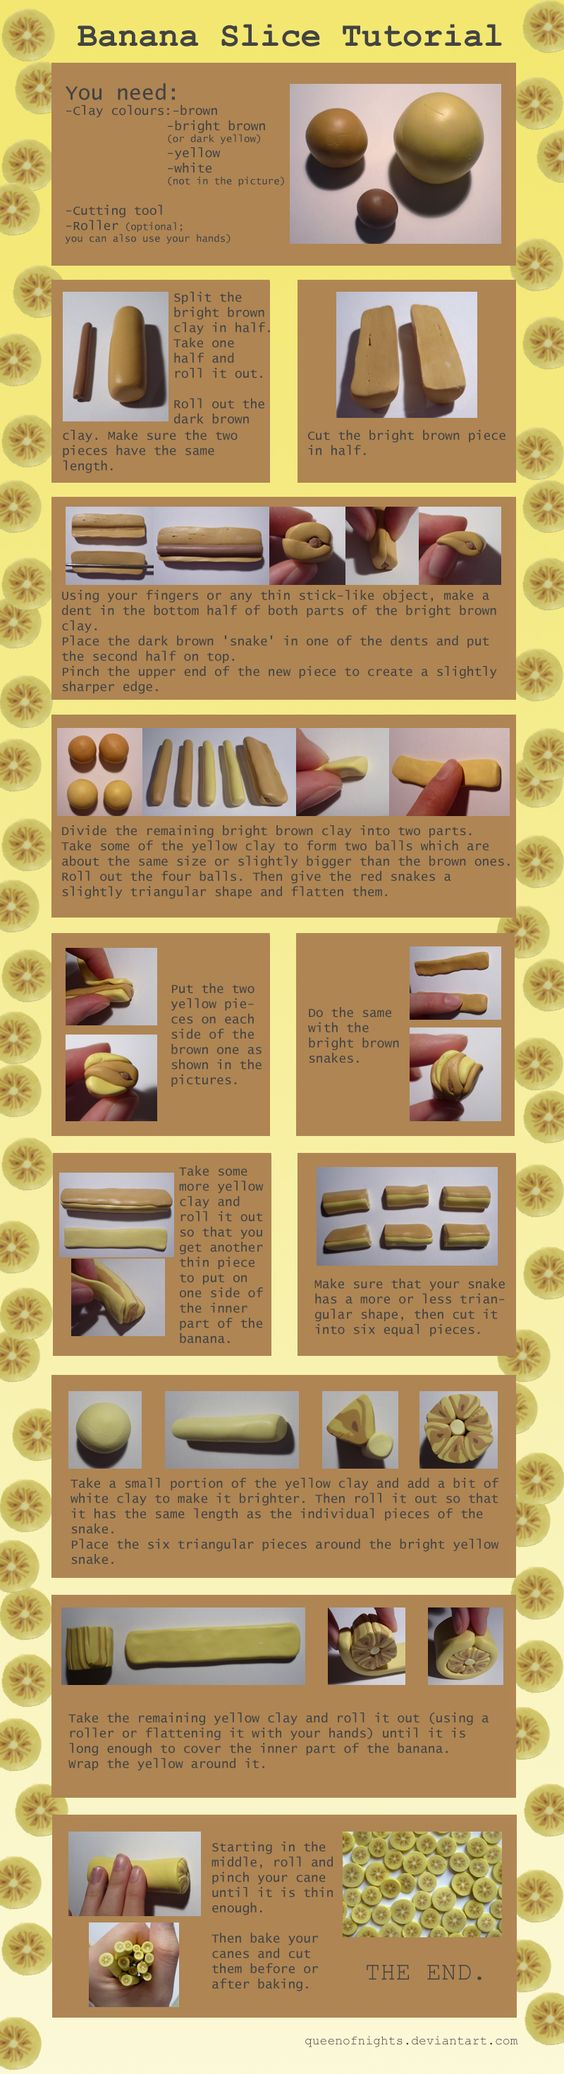 Banana Slice Tutorial by ~QueEnOfNights on deviantART: